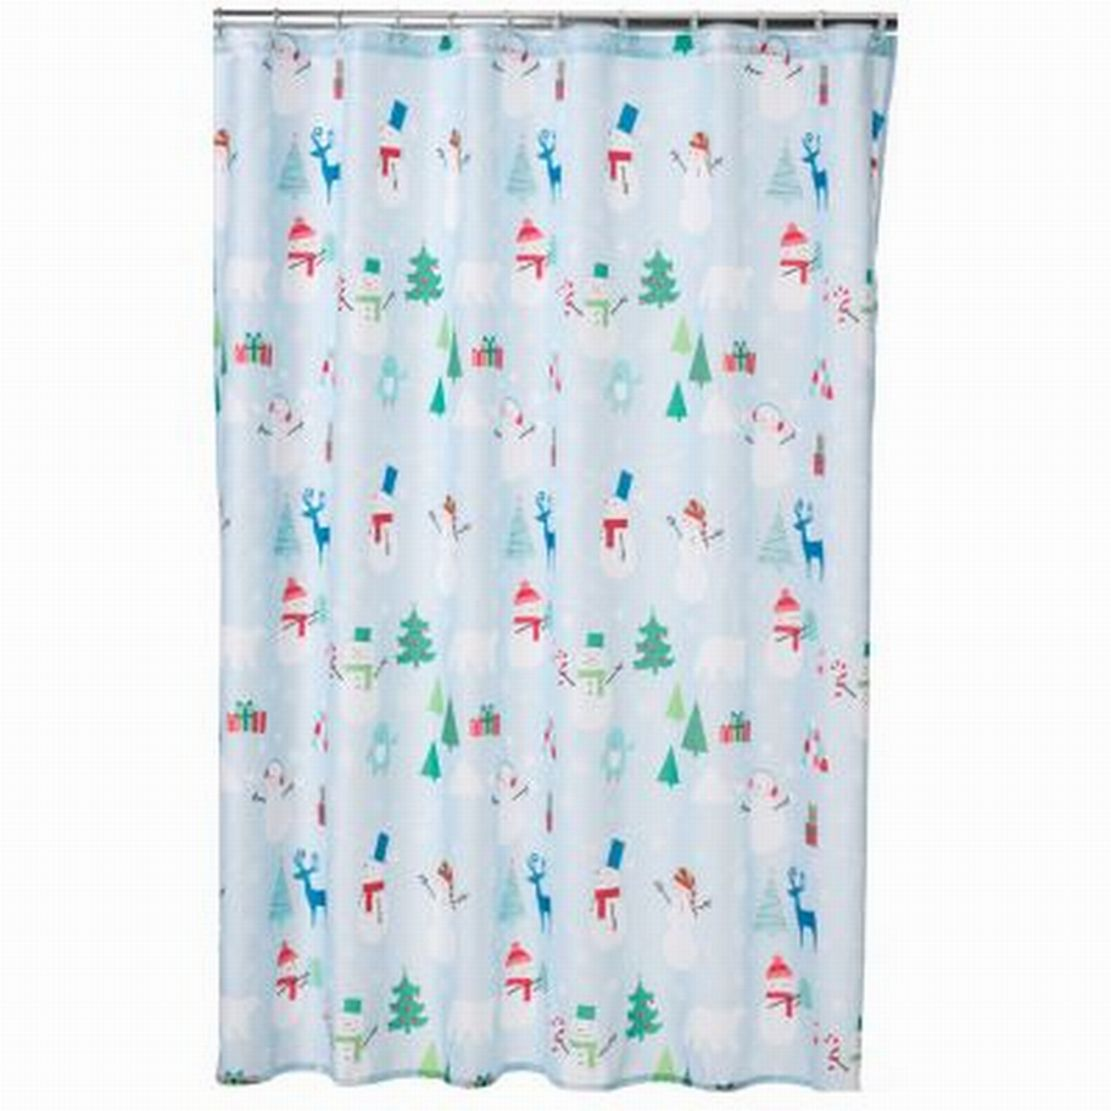 Christmas Shower Curtains Walmart Brown Shower Curtains Walm